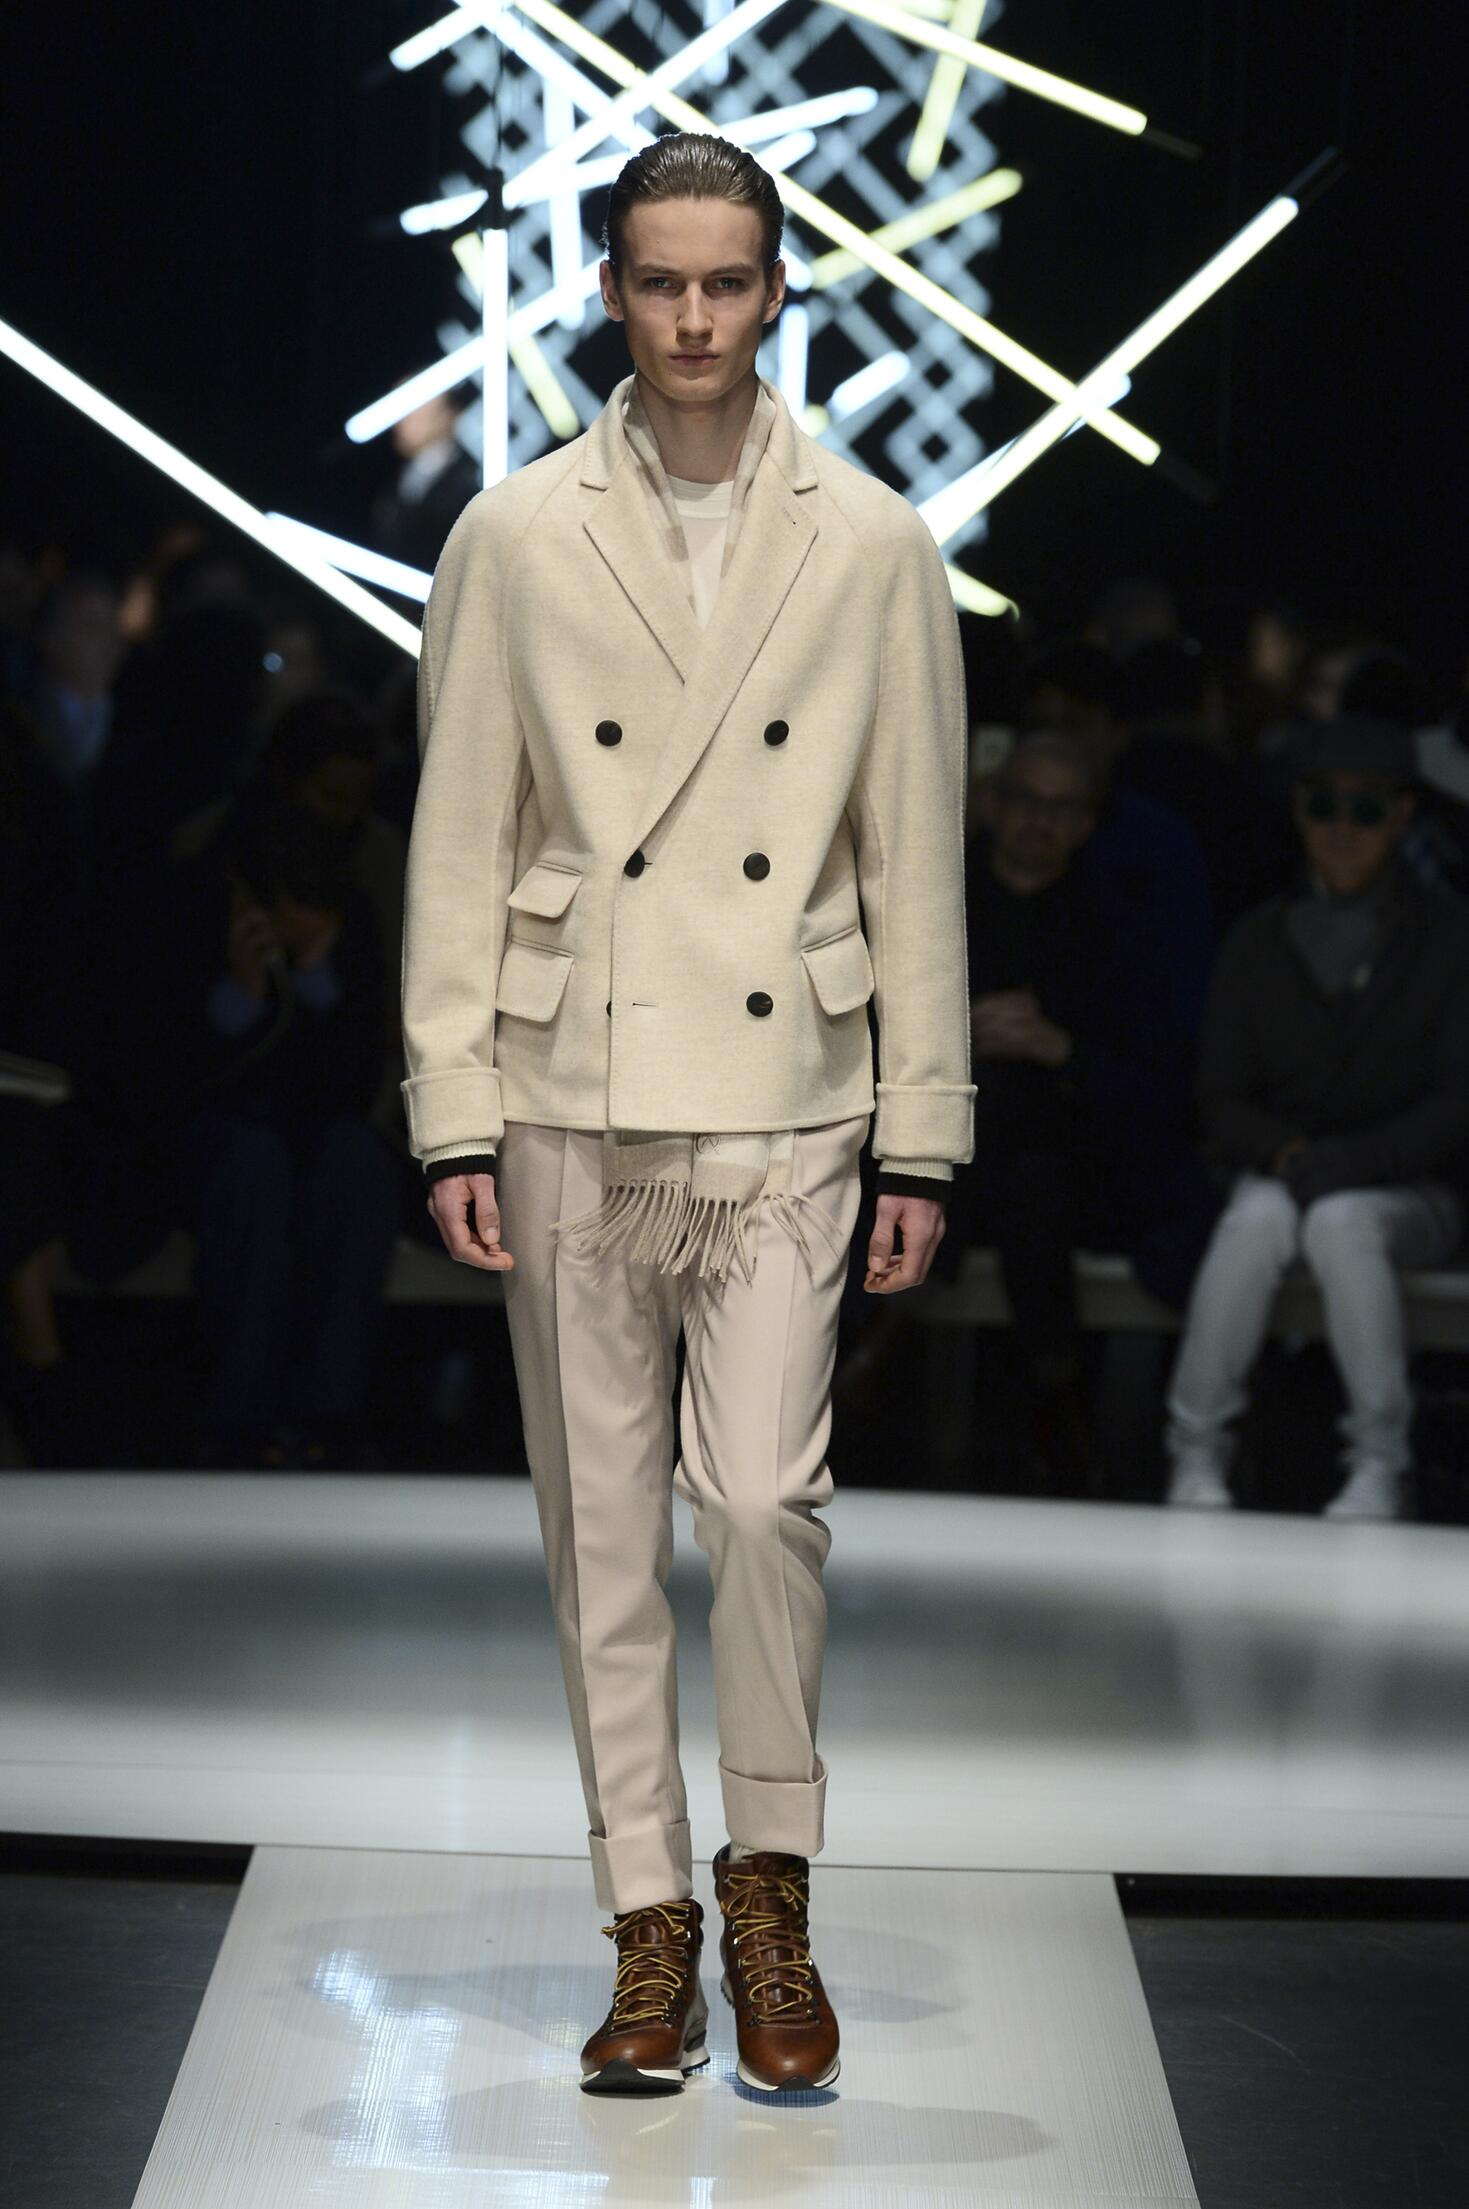 Catwalk Canali Collection Fashion Show Winter 2015